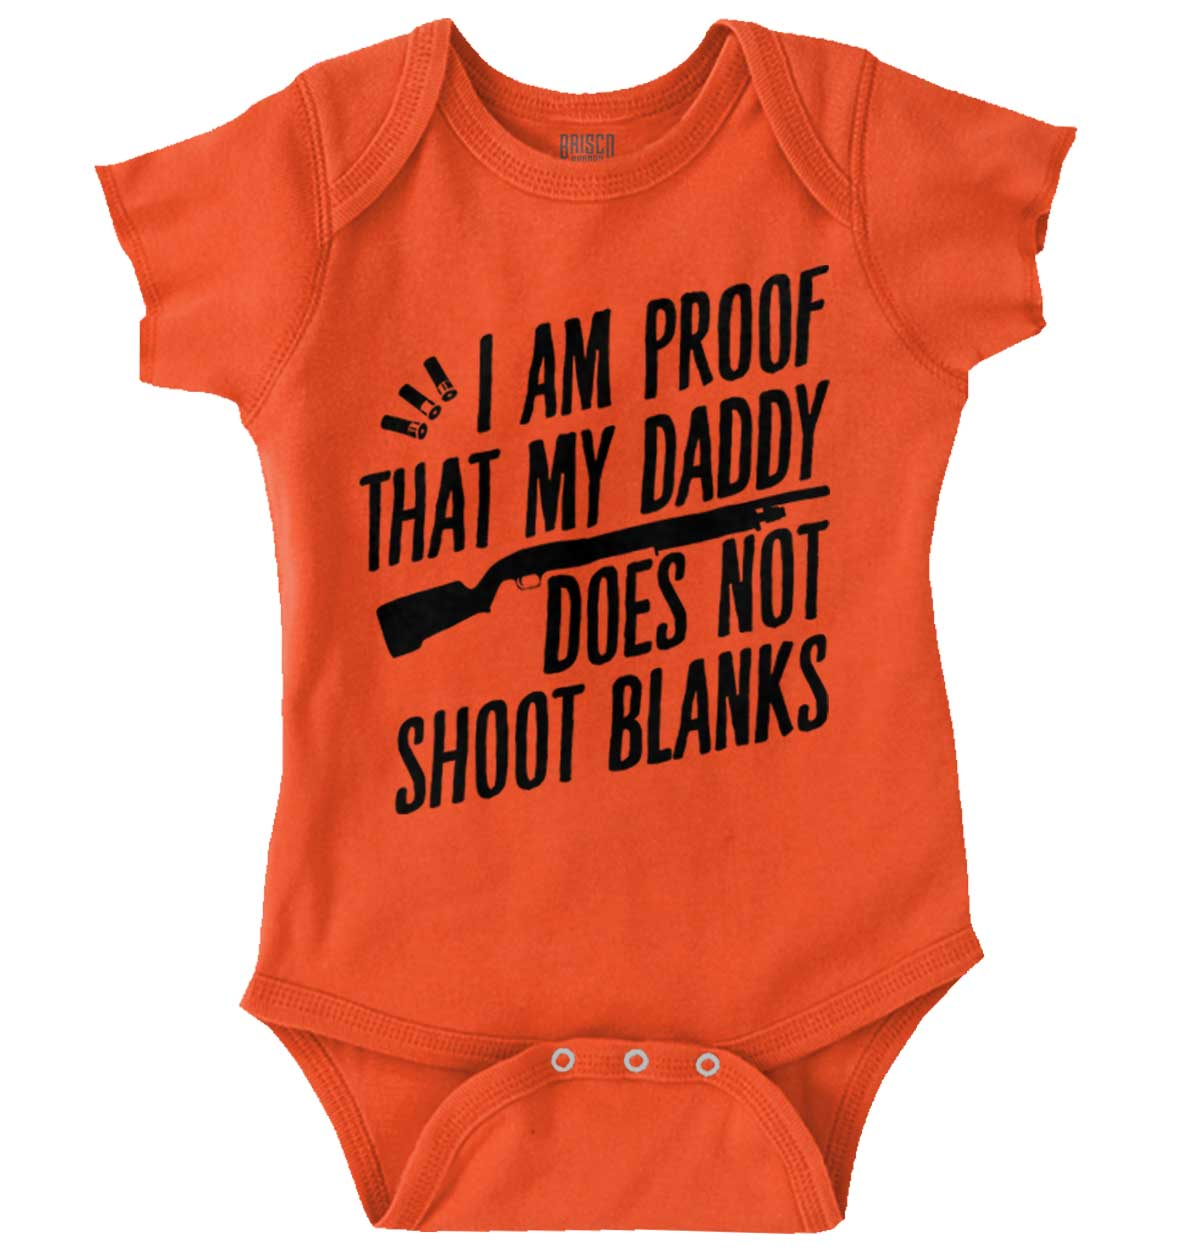 Slocrea Bodysuit for baby Daddy put me this Bodysuit alone-free shipping